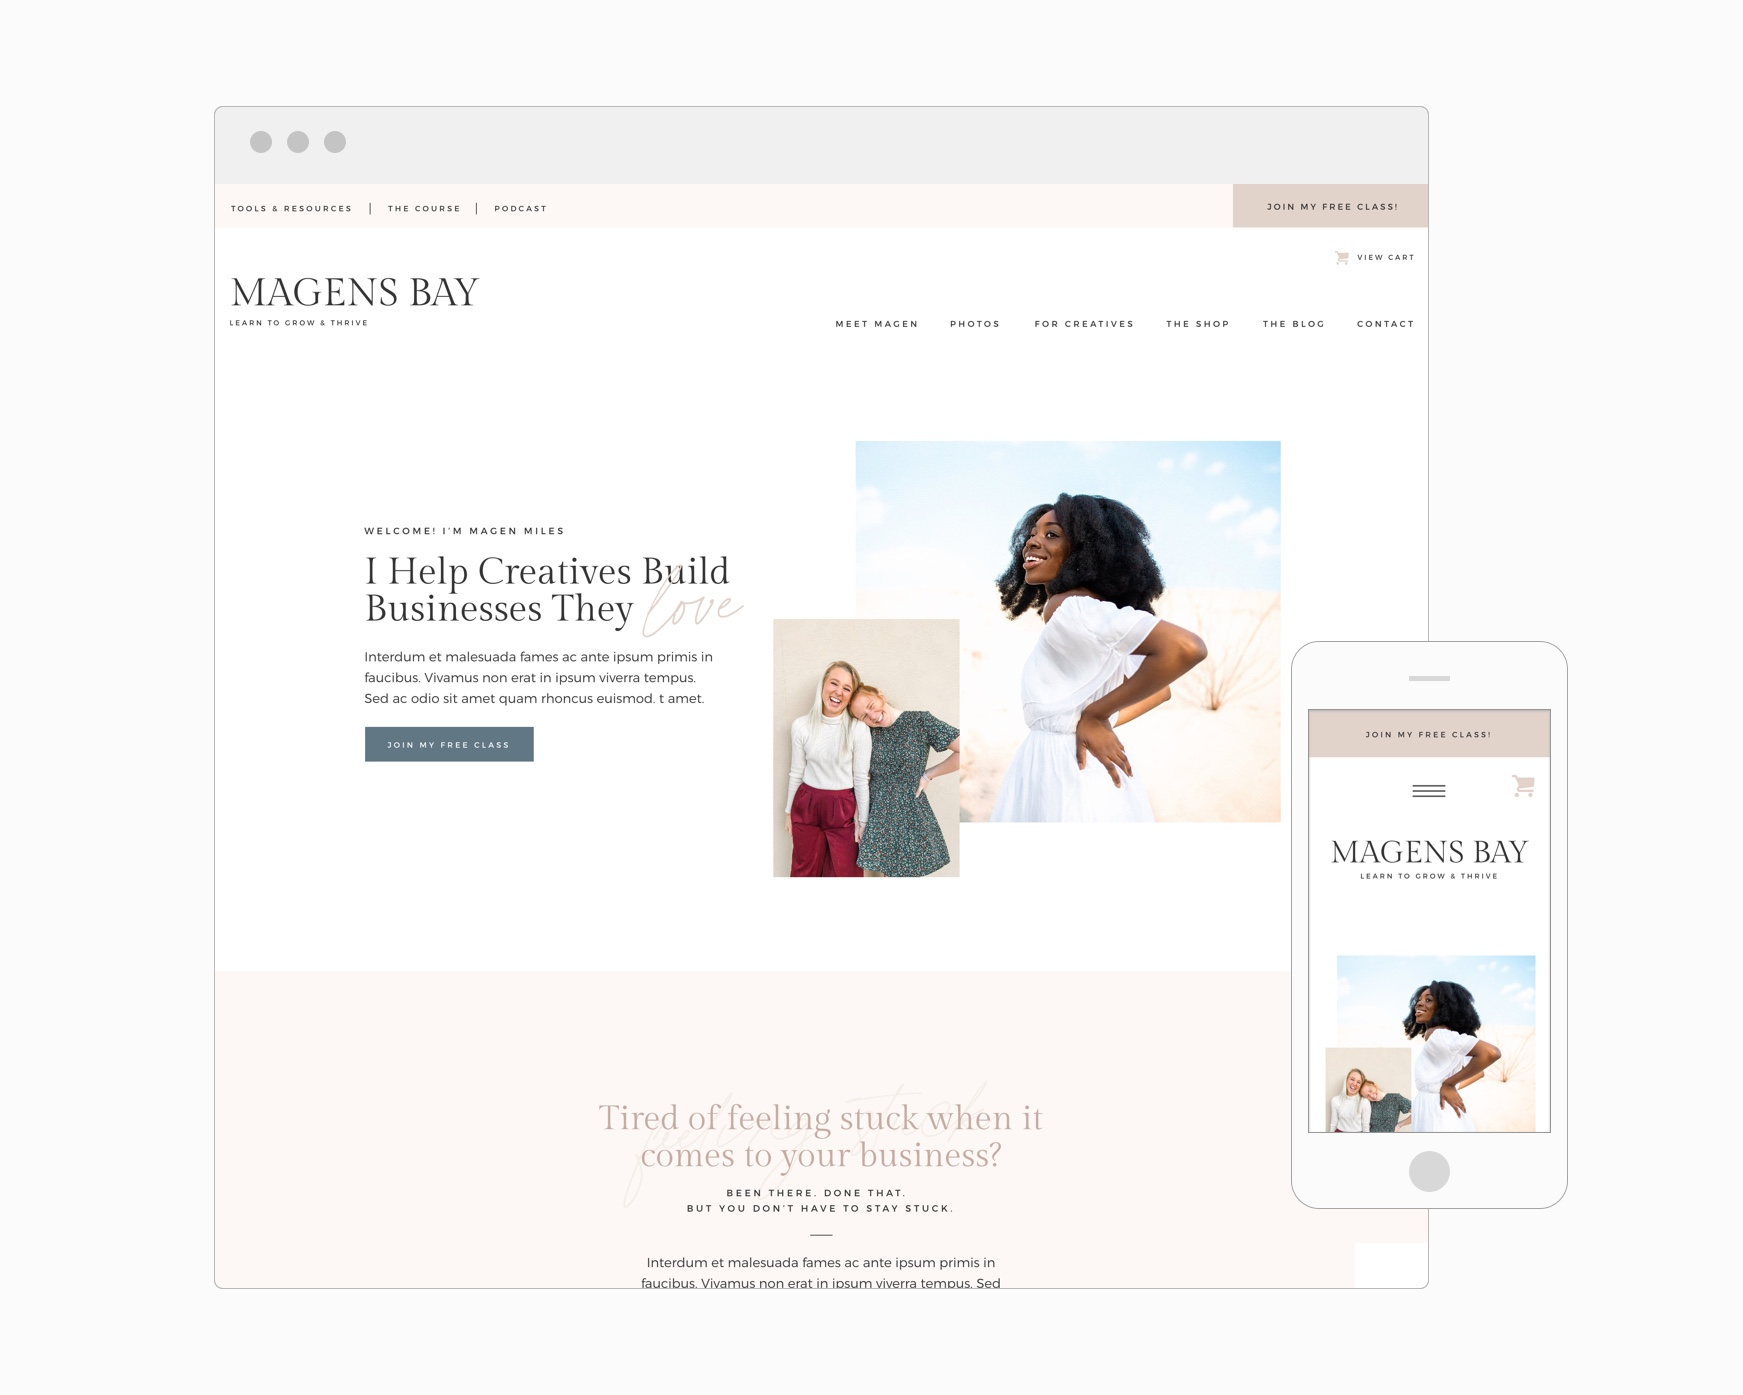 Magens Bay (Showit)